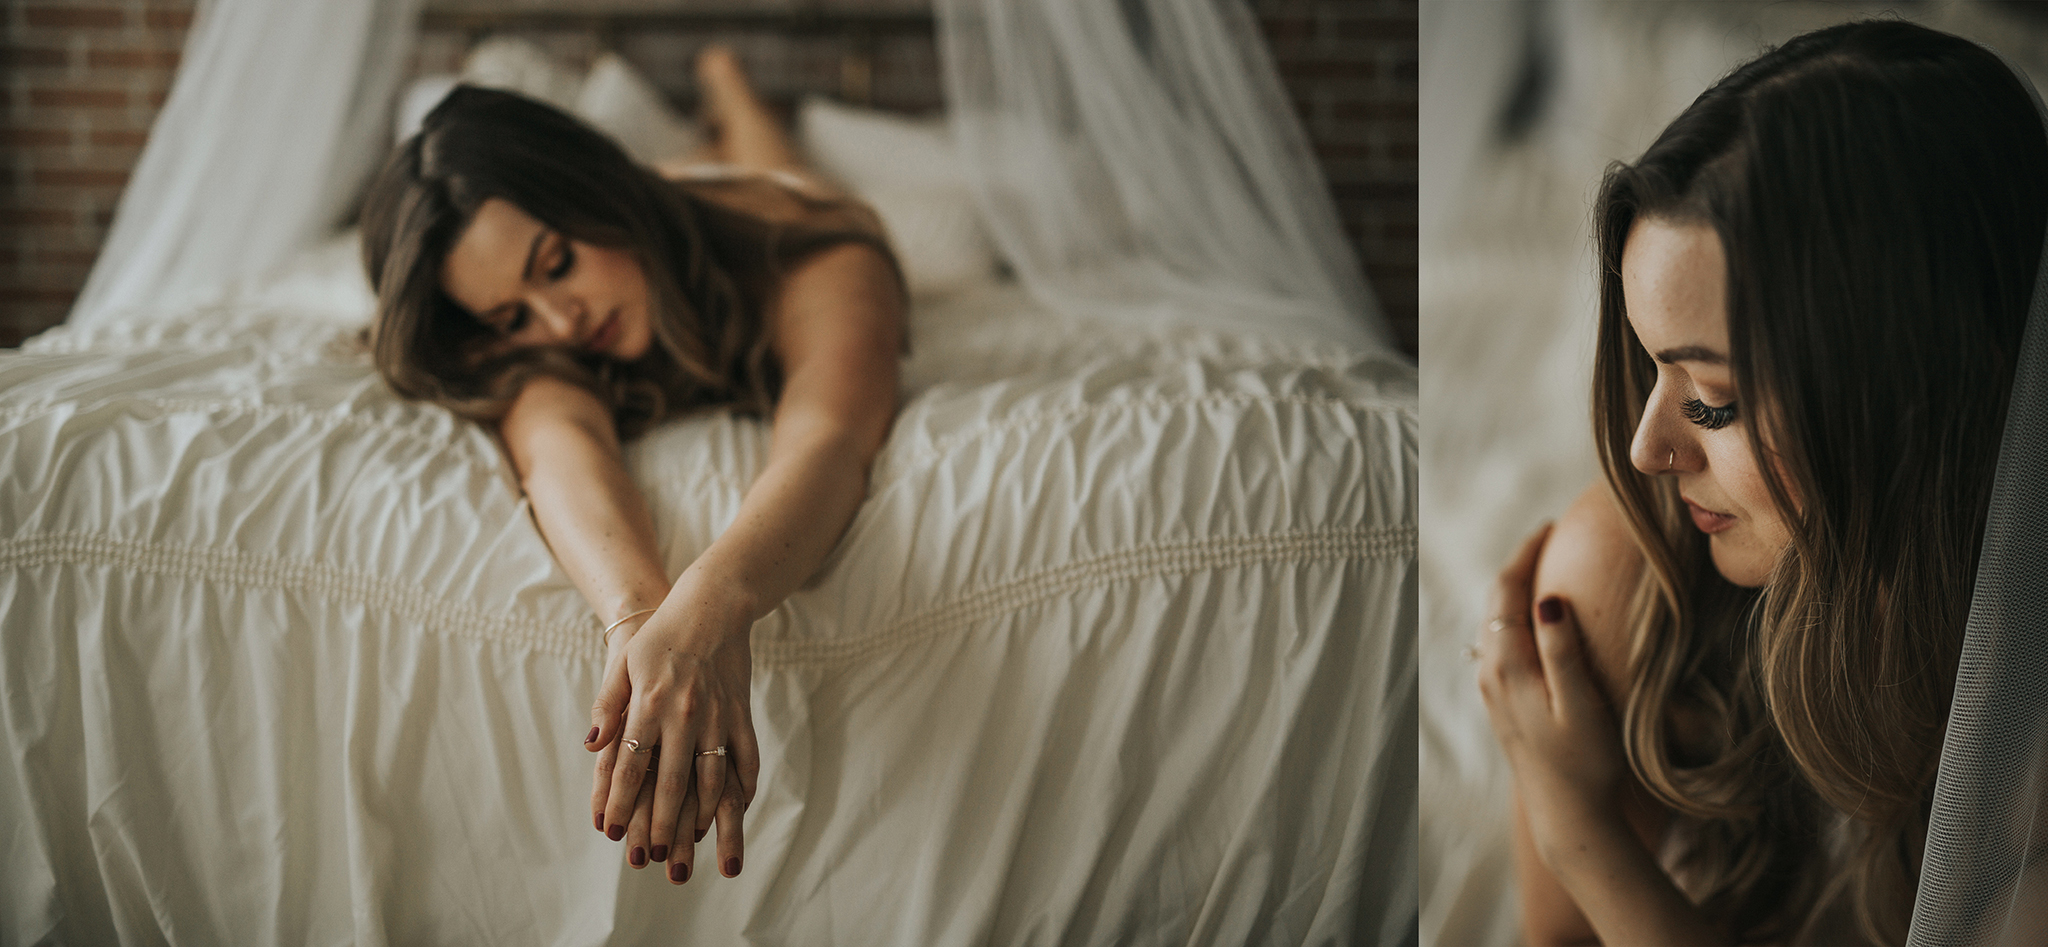 Studio Boudoir Session, Myrtle and Moss Photography, Victoria Boudoir Photography